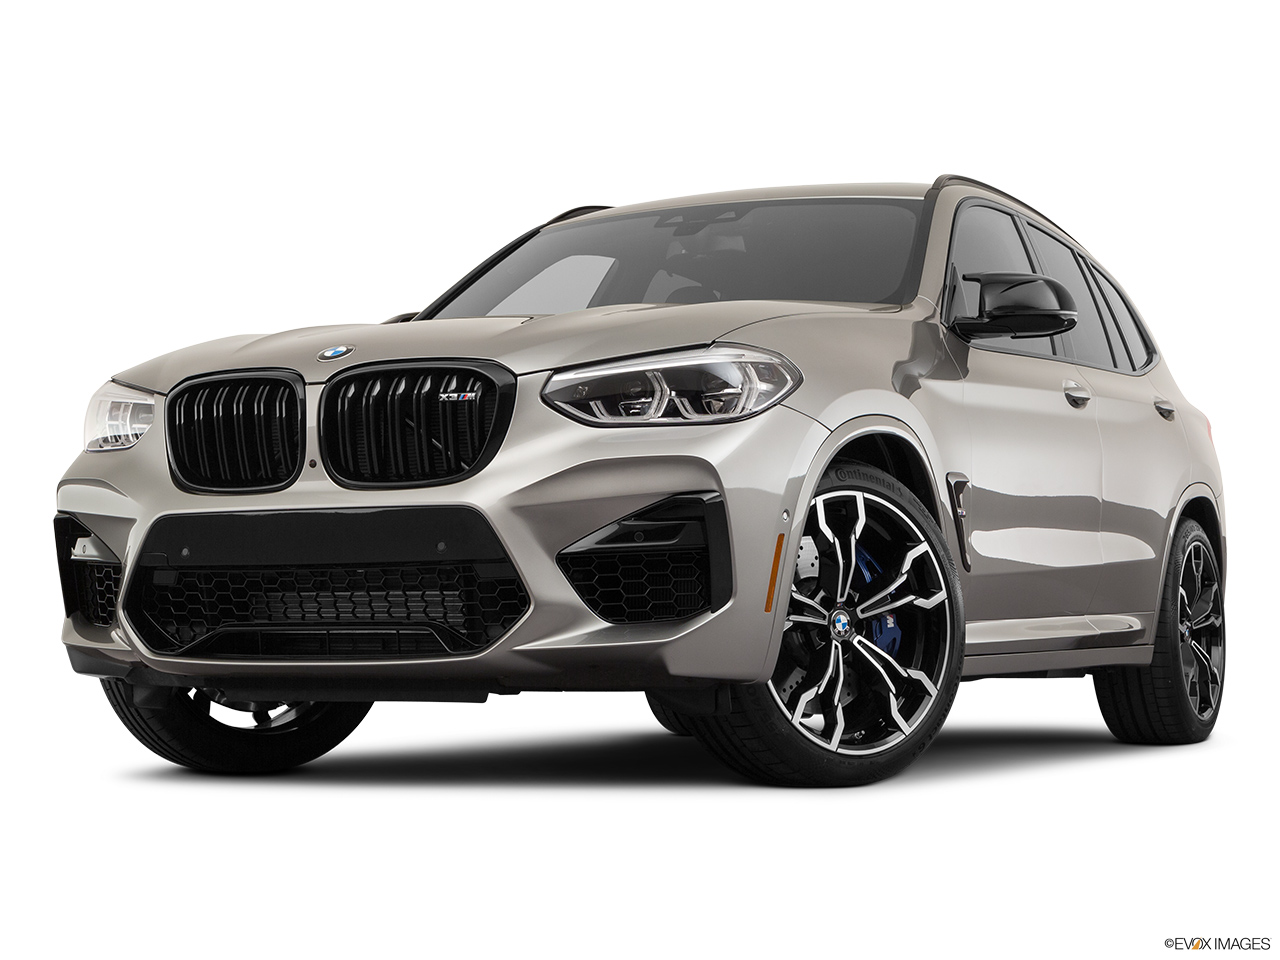 2020 BMW X3 M Competition Front angle view, low wide perspective.